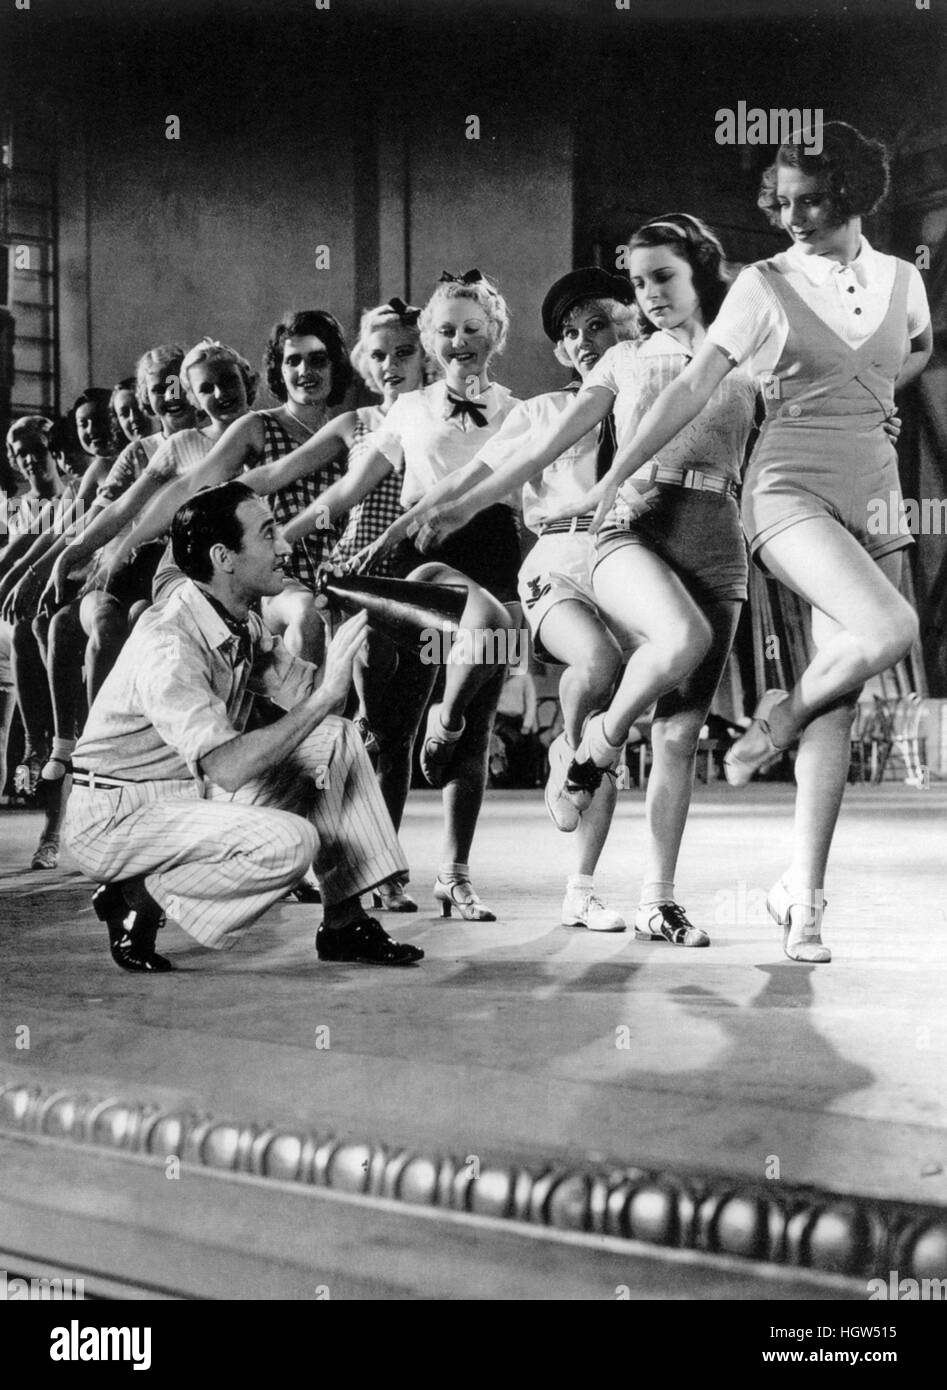 42nd STREET 1933 Warner Bros film with Andy Lee - Stock Image